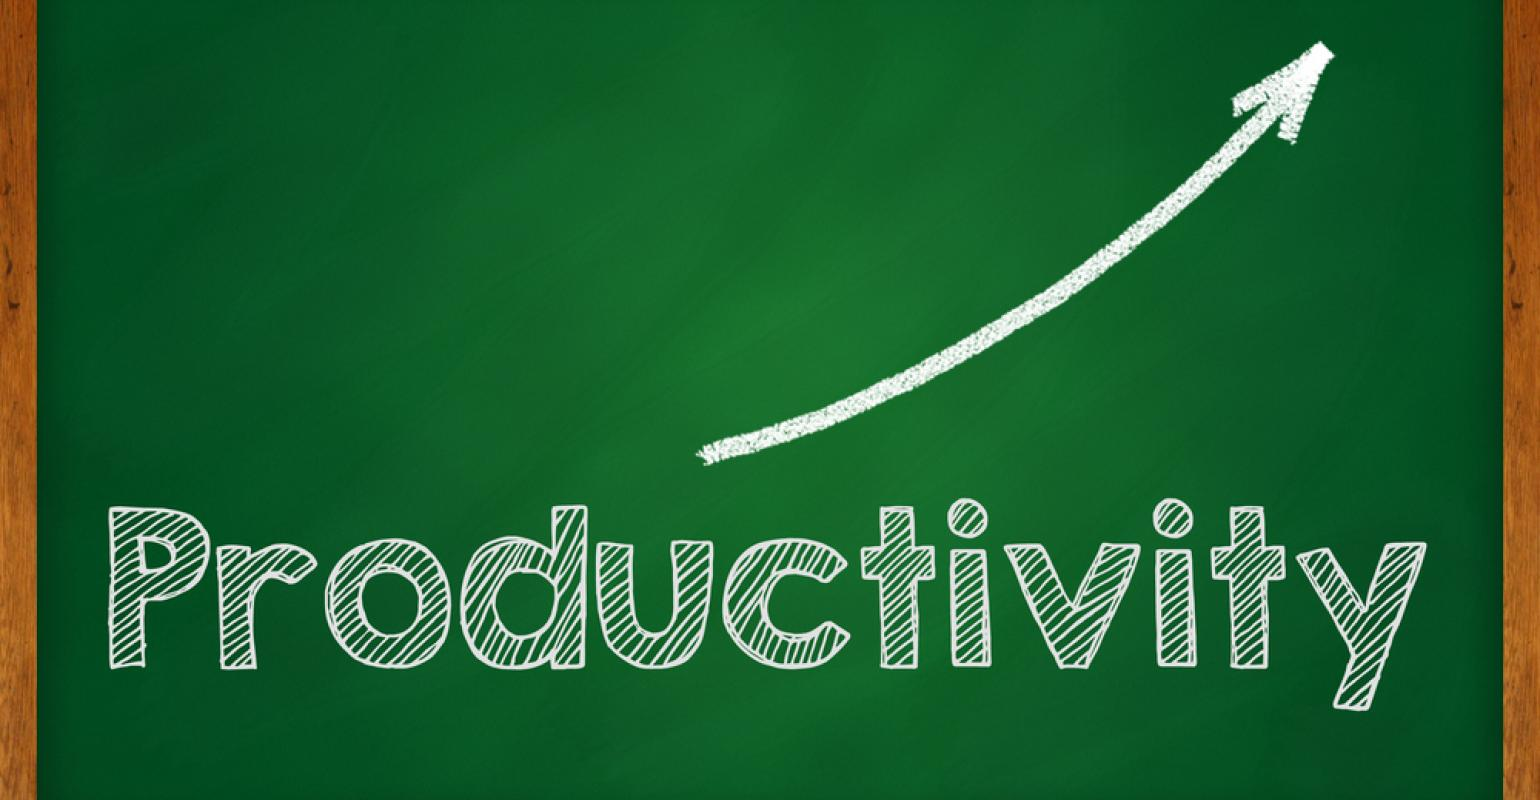 productivity and quality Impact of employee productivity analysis  it is mandatory to study the impact of employee productivity  employee productivity analysis on service quality.